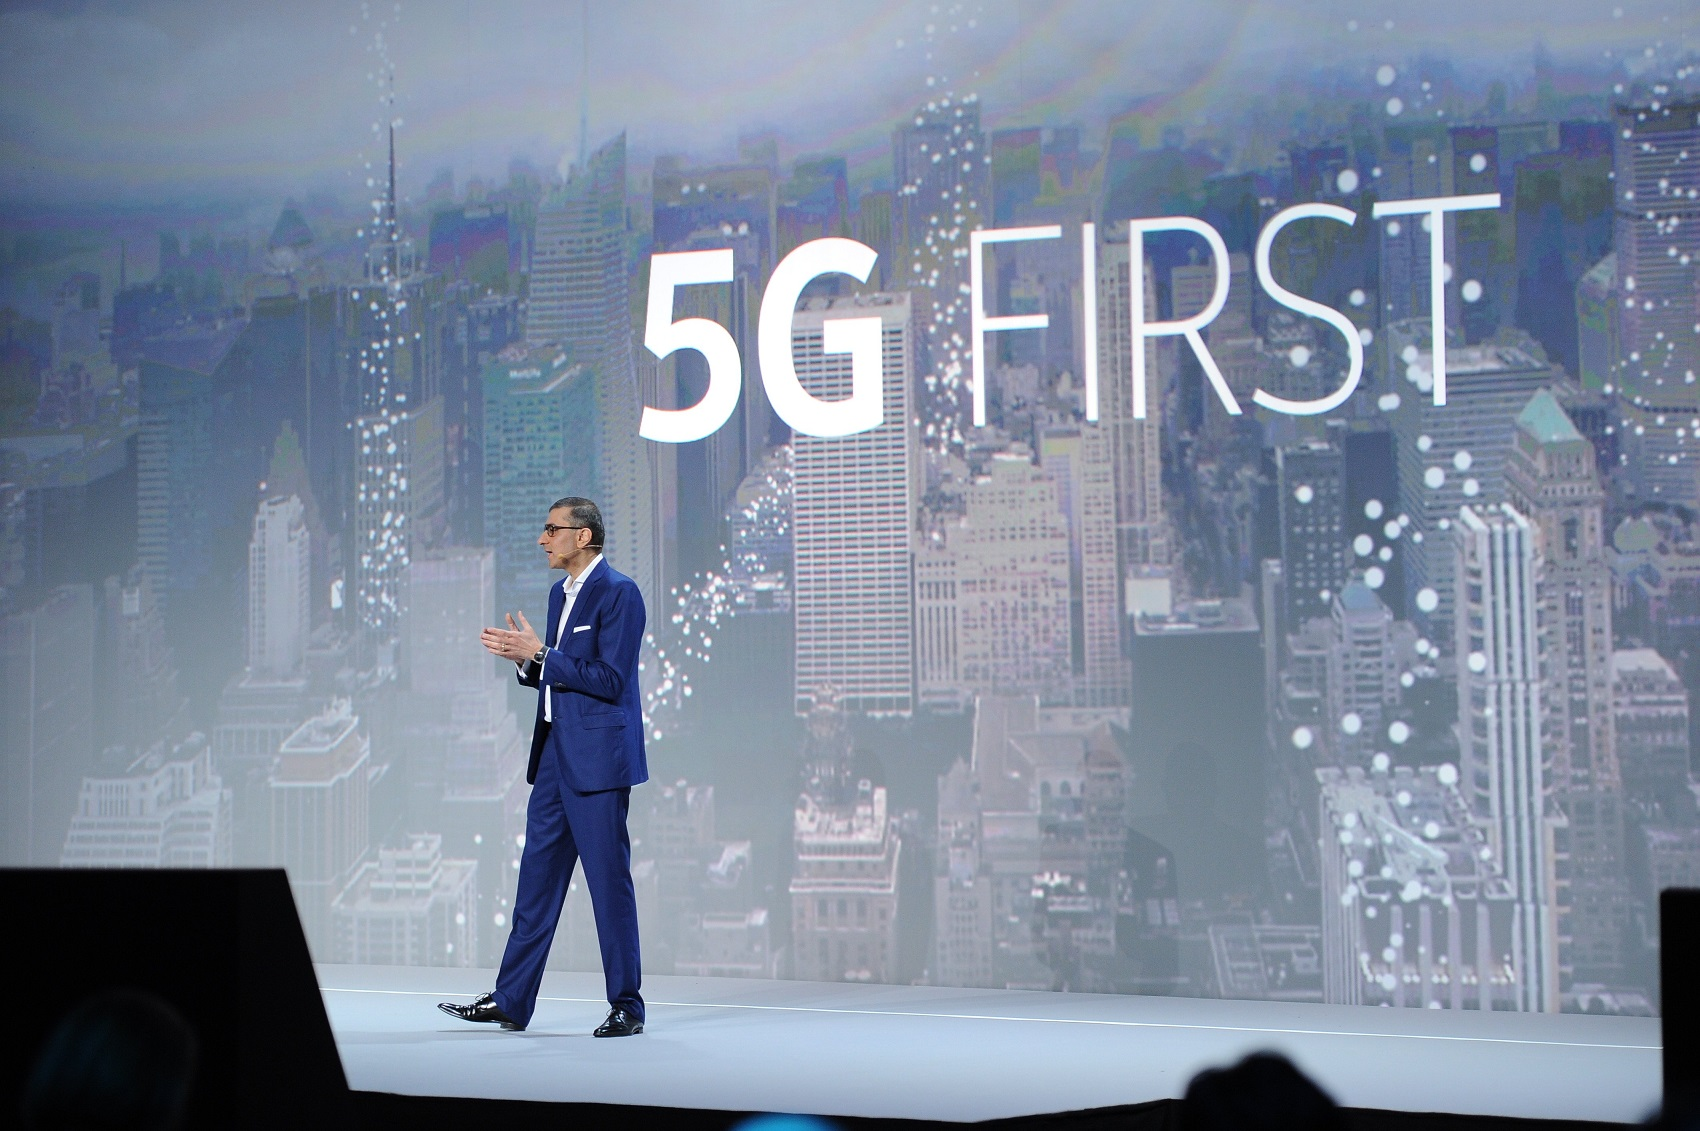 Nokia's vision for 5G goes way beyond mobile TechNative